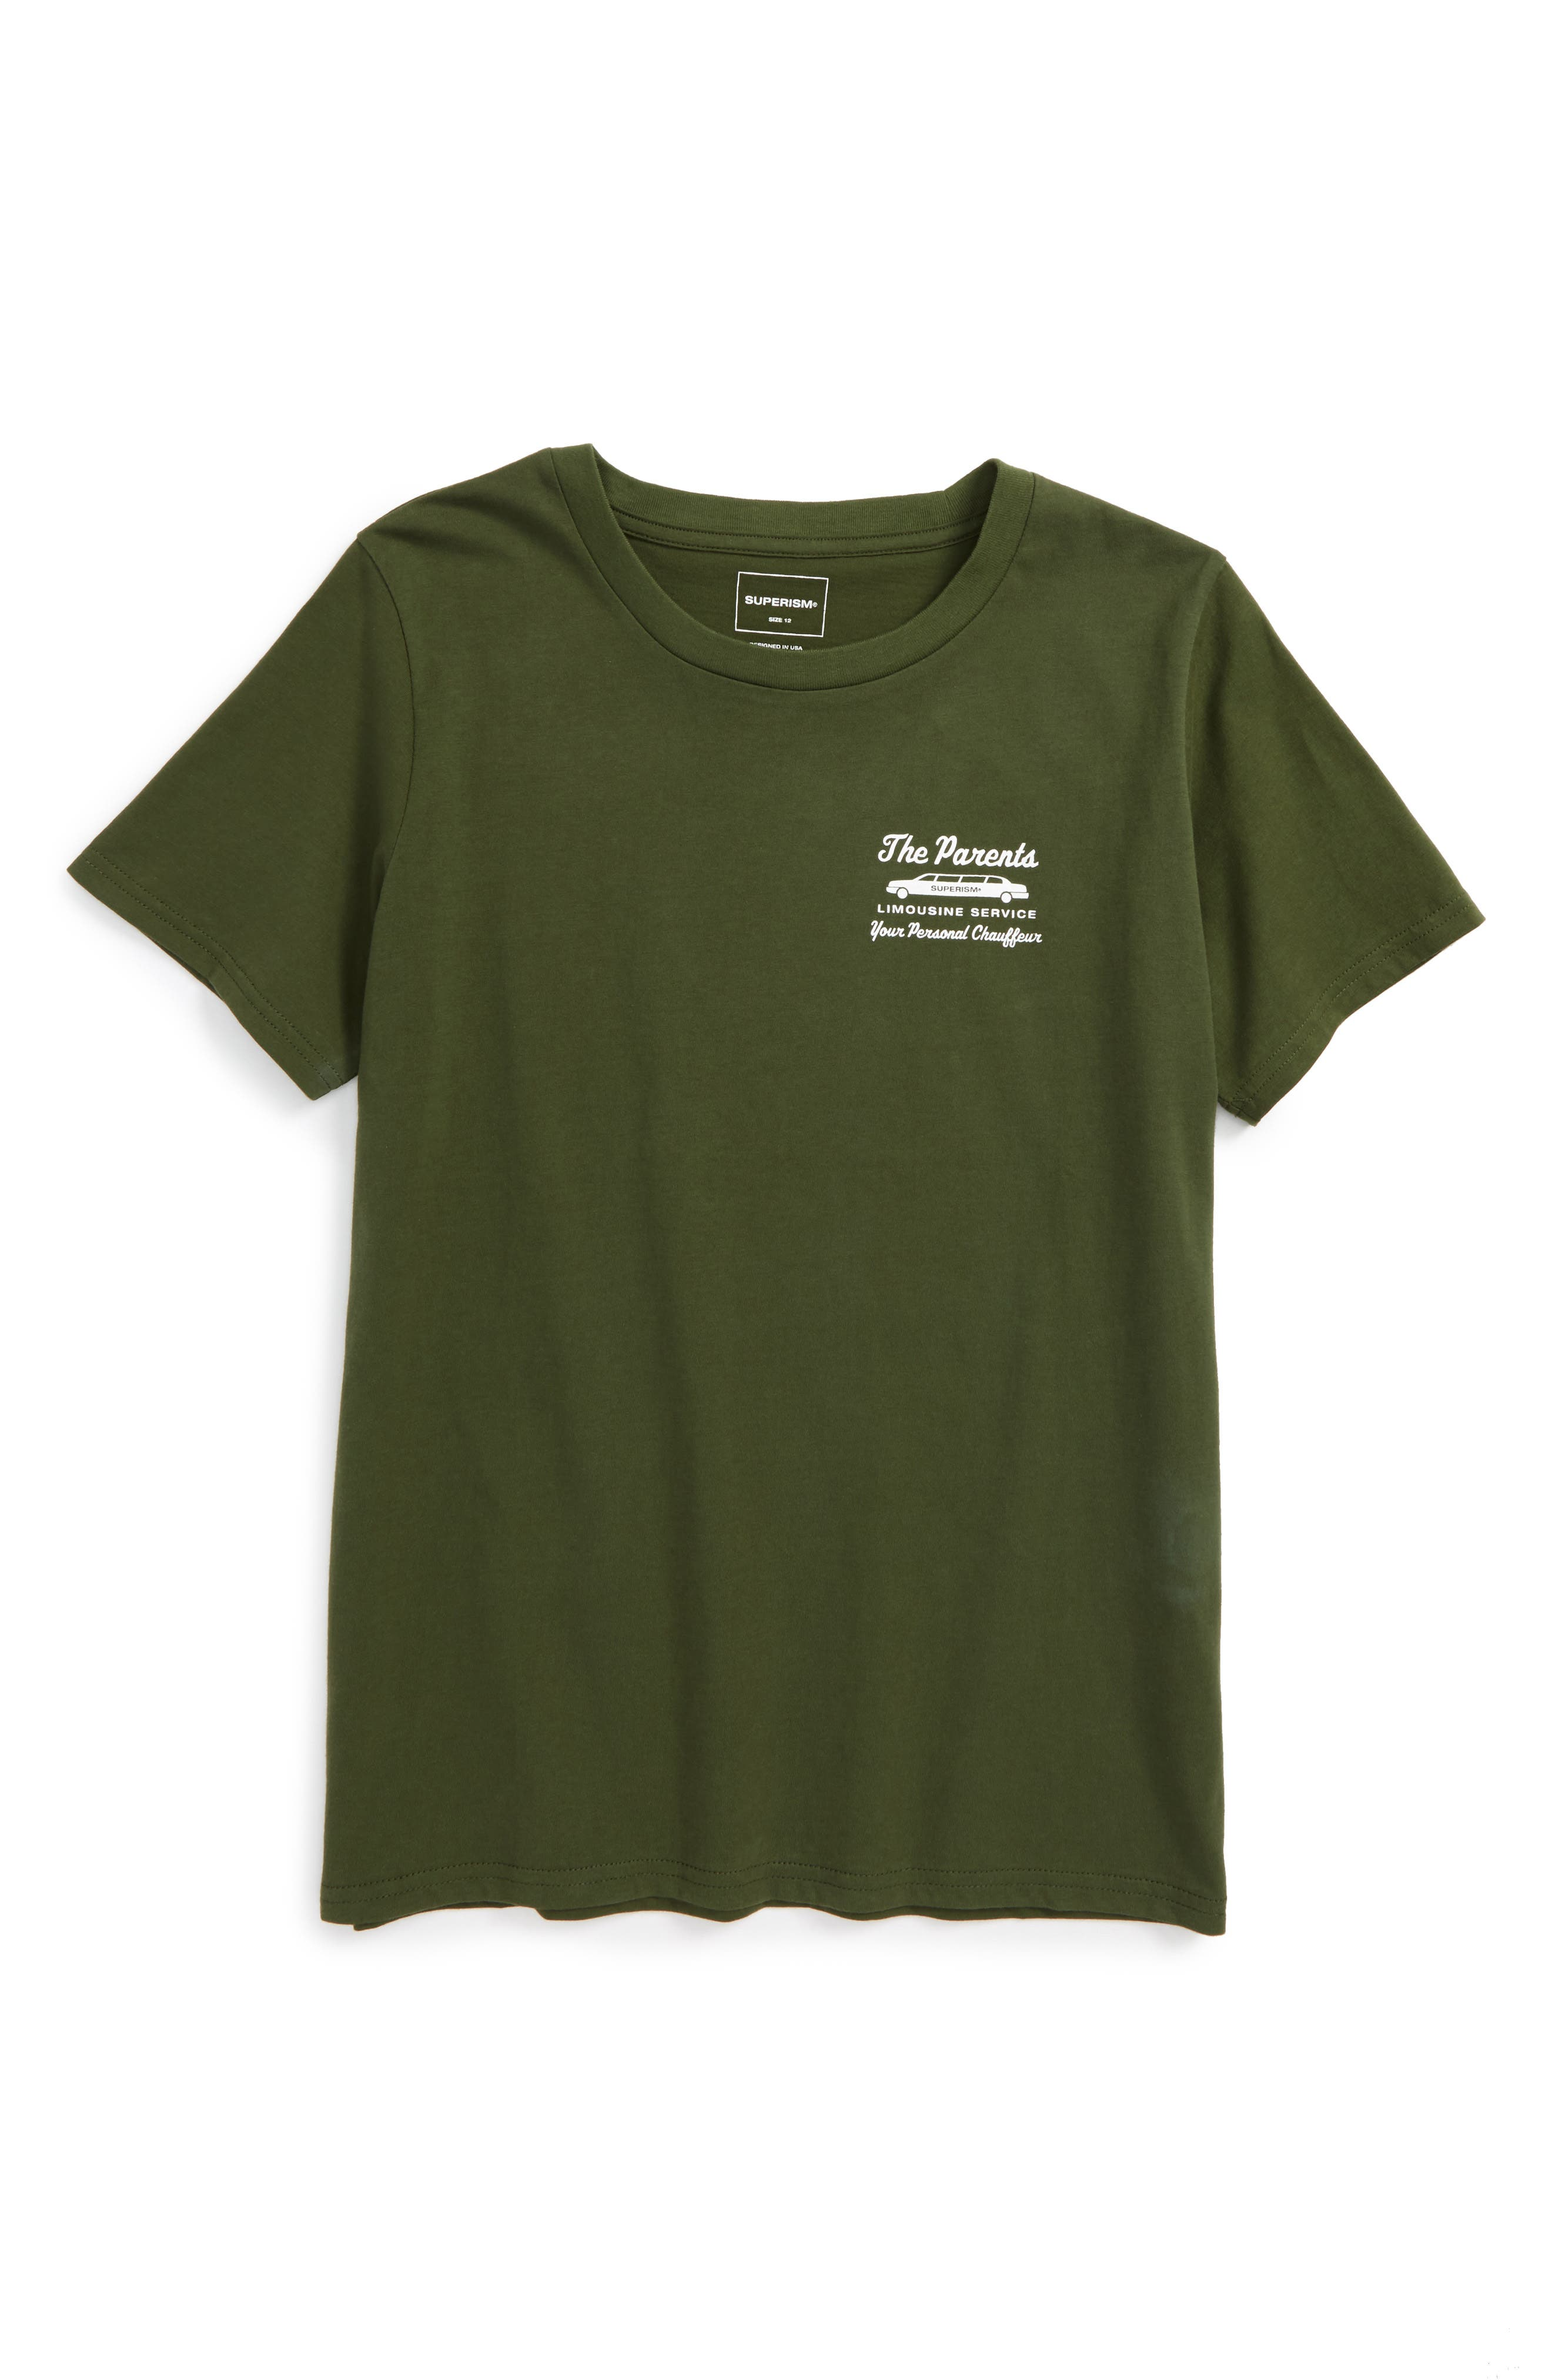 Alternate Image 1 Selected - Superism The Parents Limousine Service T-Shirt (Big Boys)